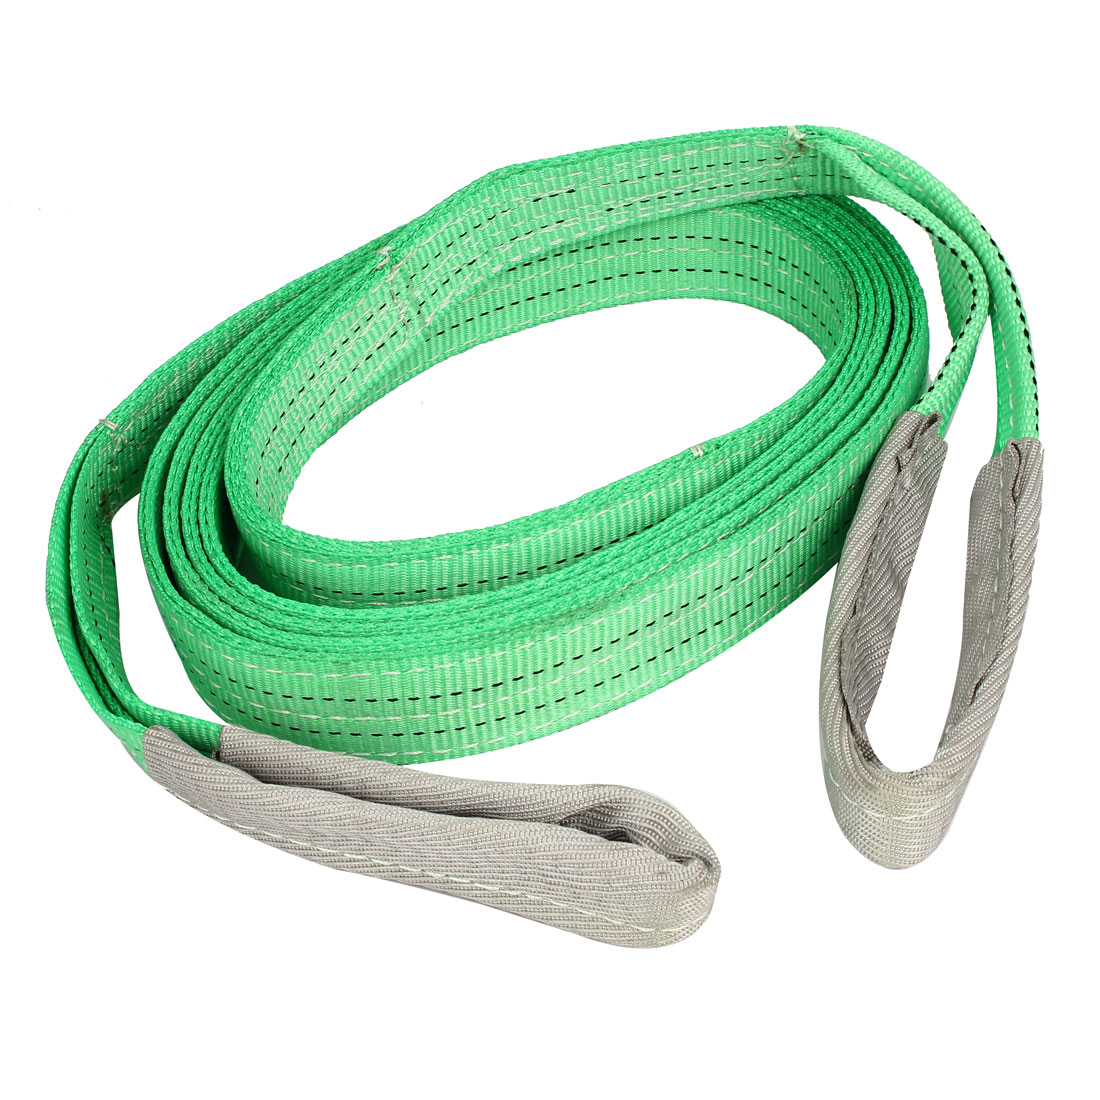 50mm Width 5m Length Polyester Two Ply Twisted Eye Lifting Tow Strap Green Gray